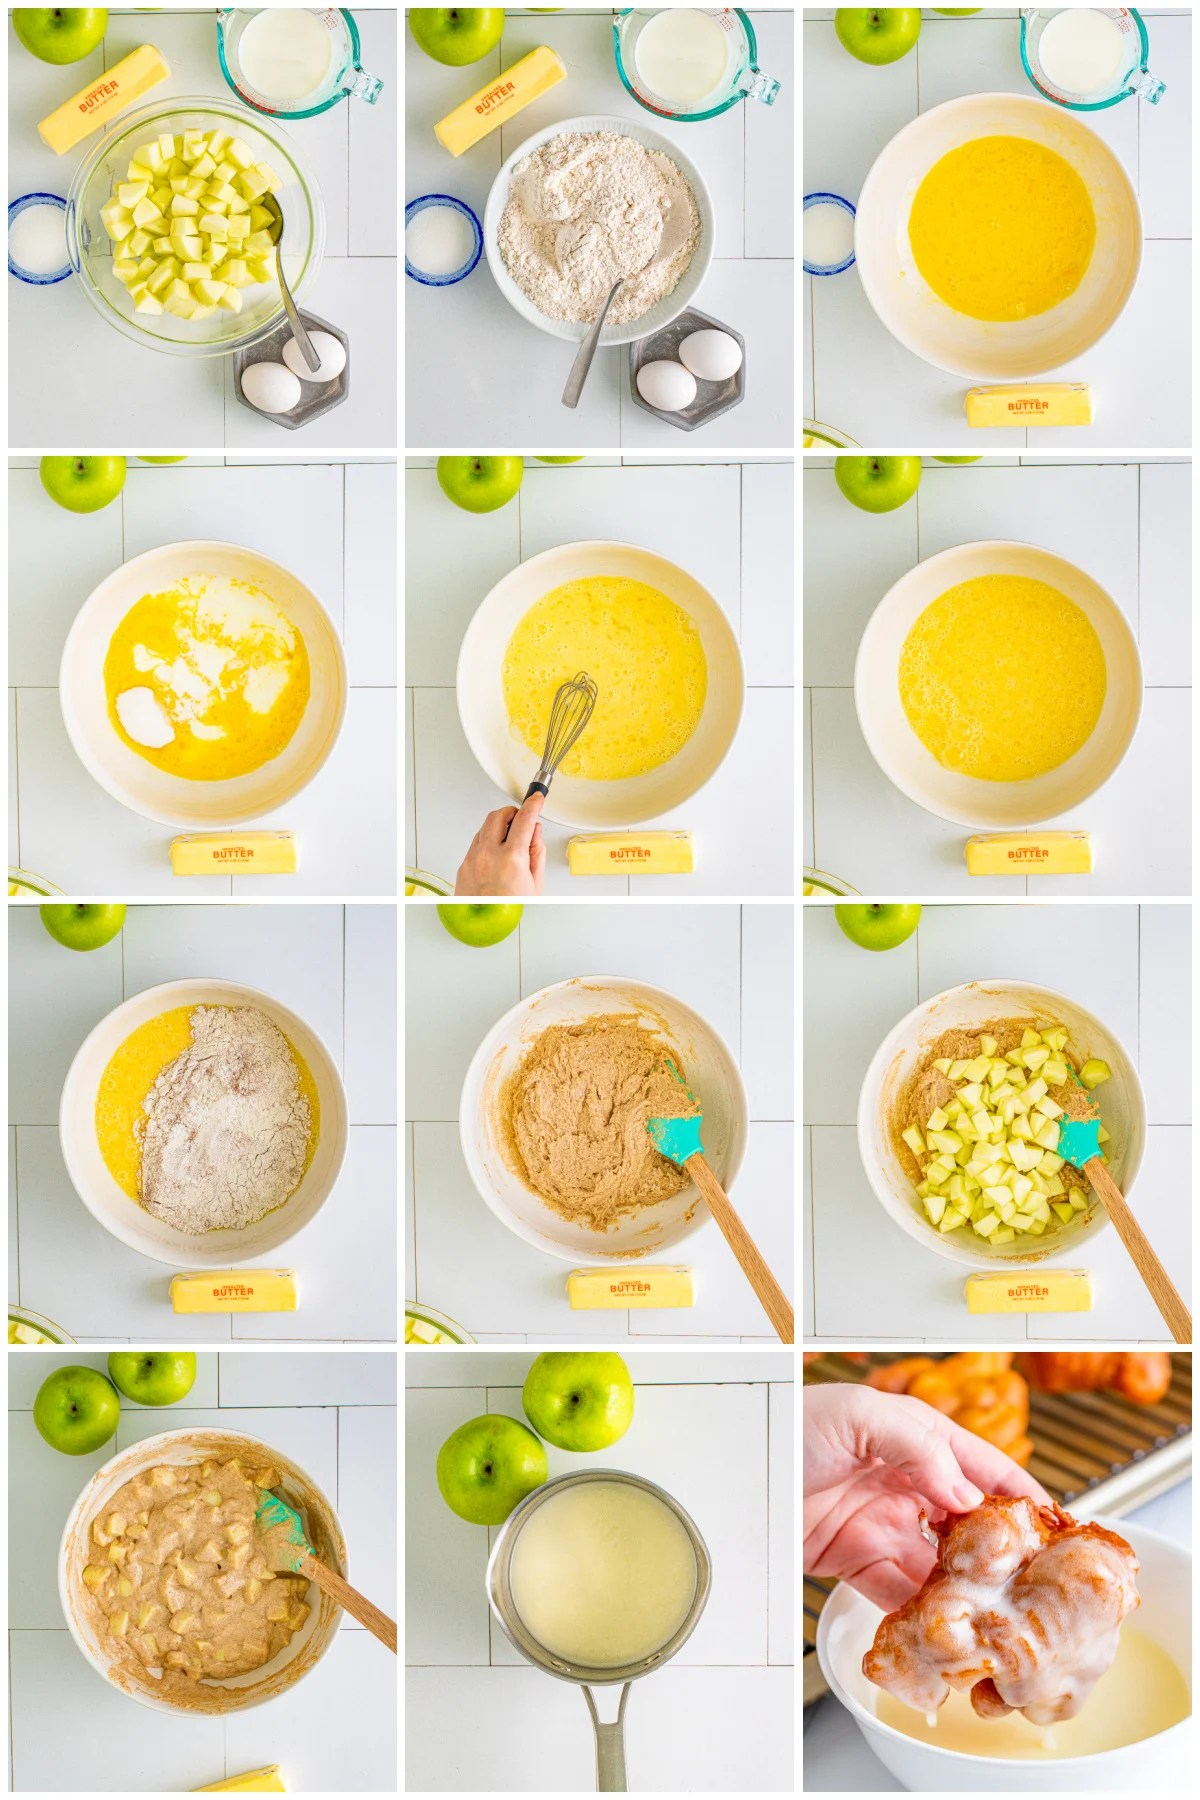 Step by step photos on how to make an Apple Fritter Recipe.